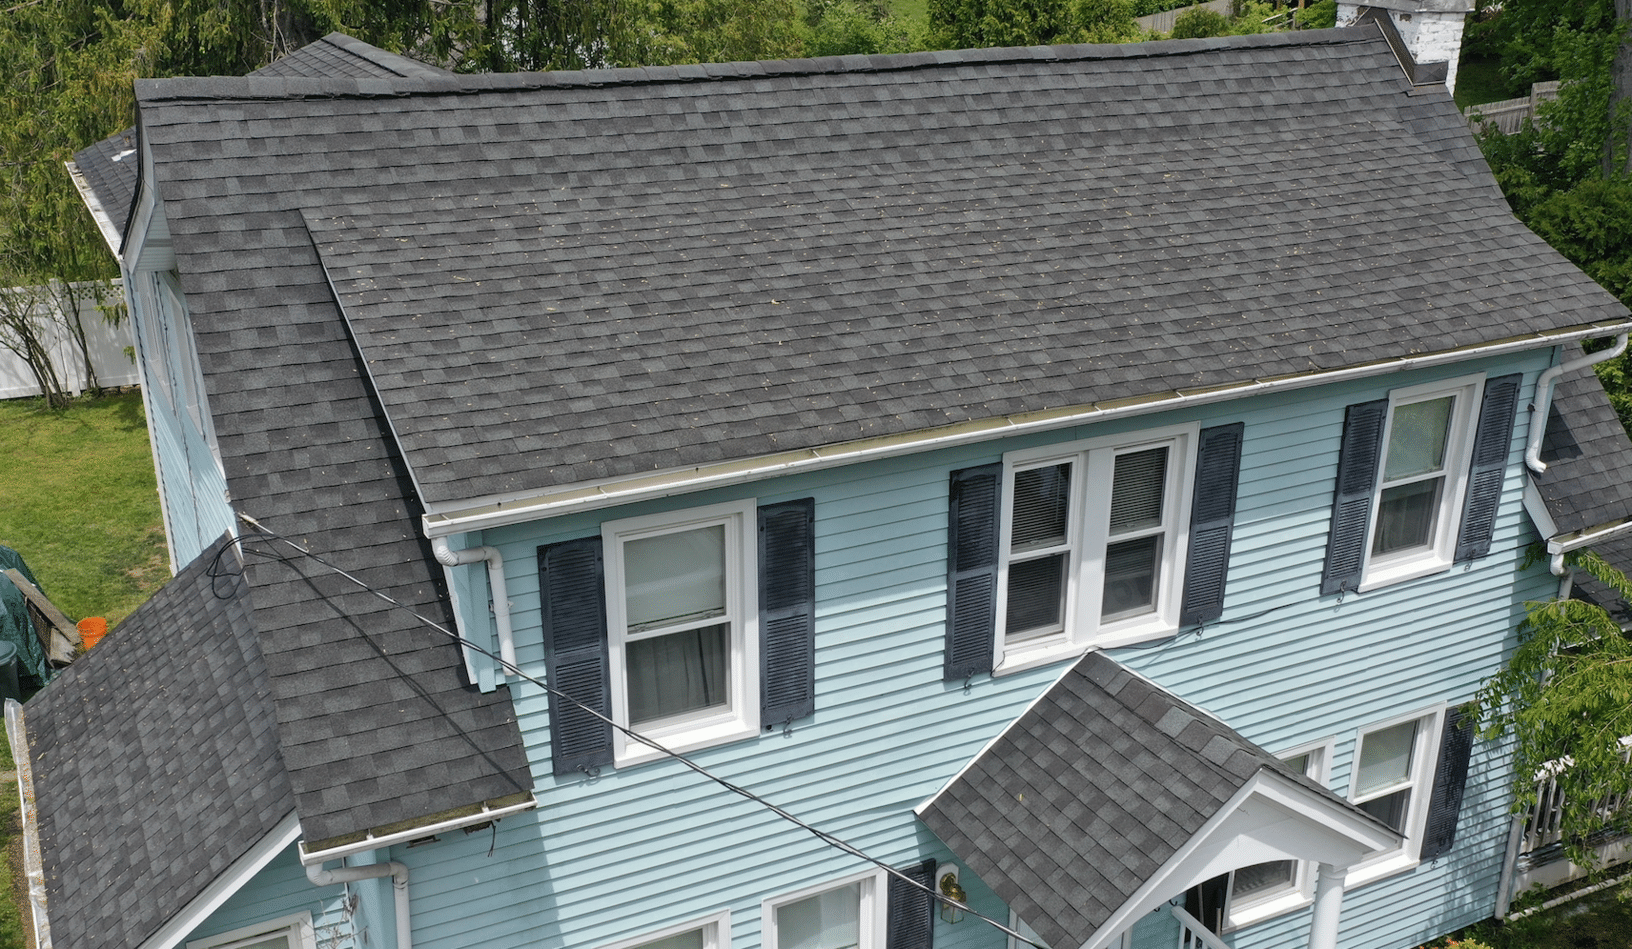 CT Gutter | Greenwich Softwash Services | Roof Cleaning | Port Chester, NY - After Photo